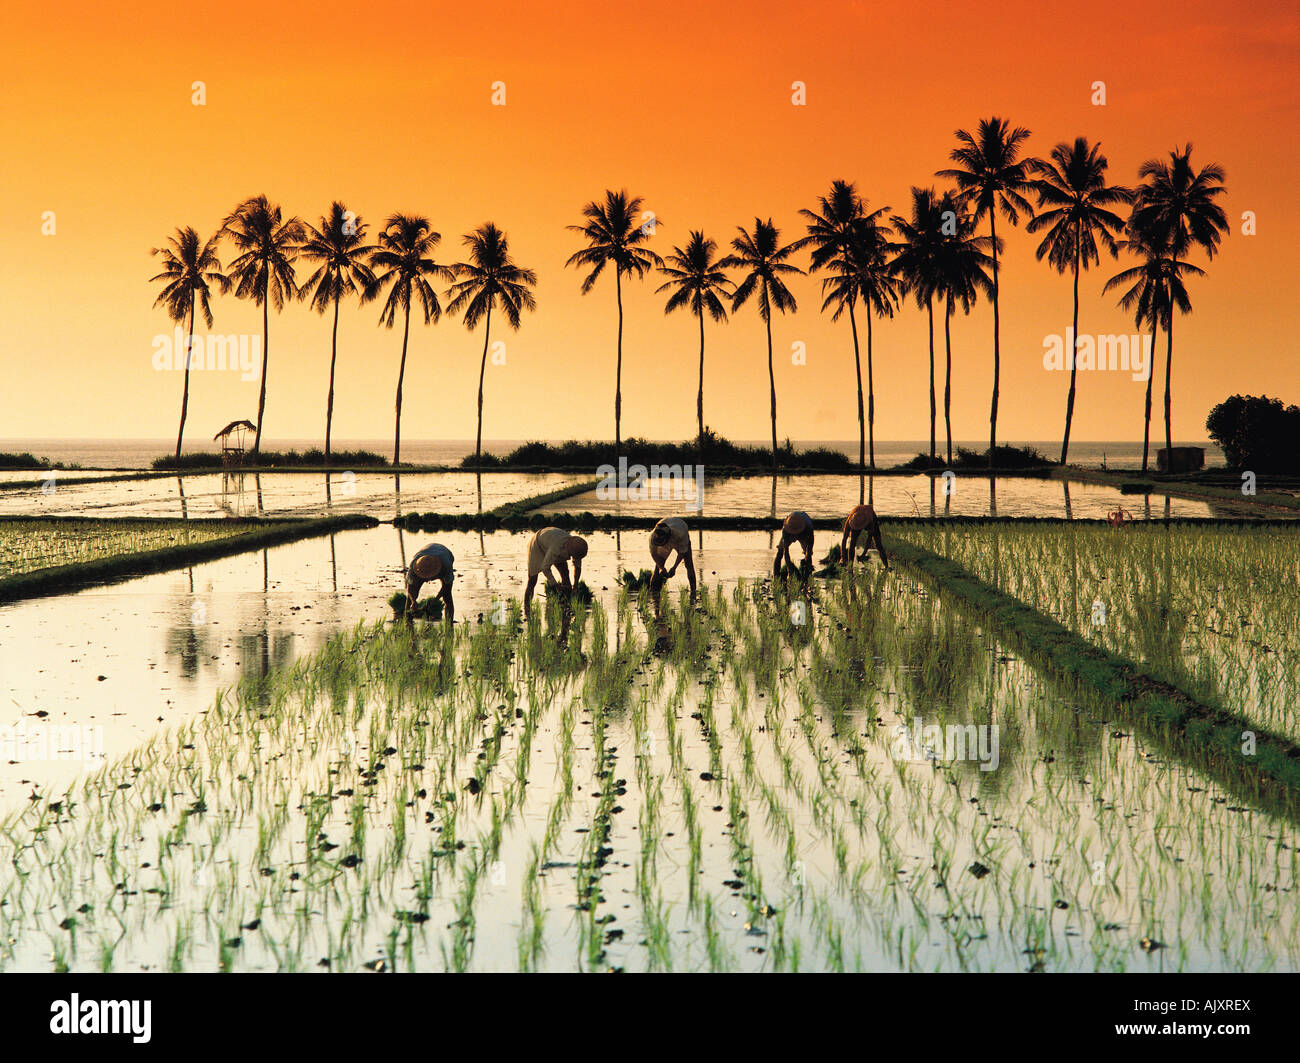 Travel, Indonesia, Bali, Agriculture, Rice paddy field workers at sunset, Kali Buk Buk, View with palms, - Stock Image